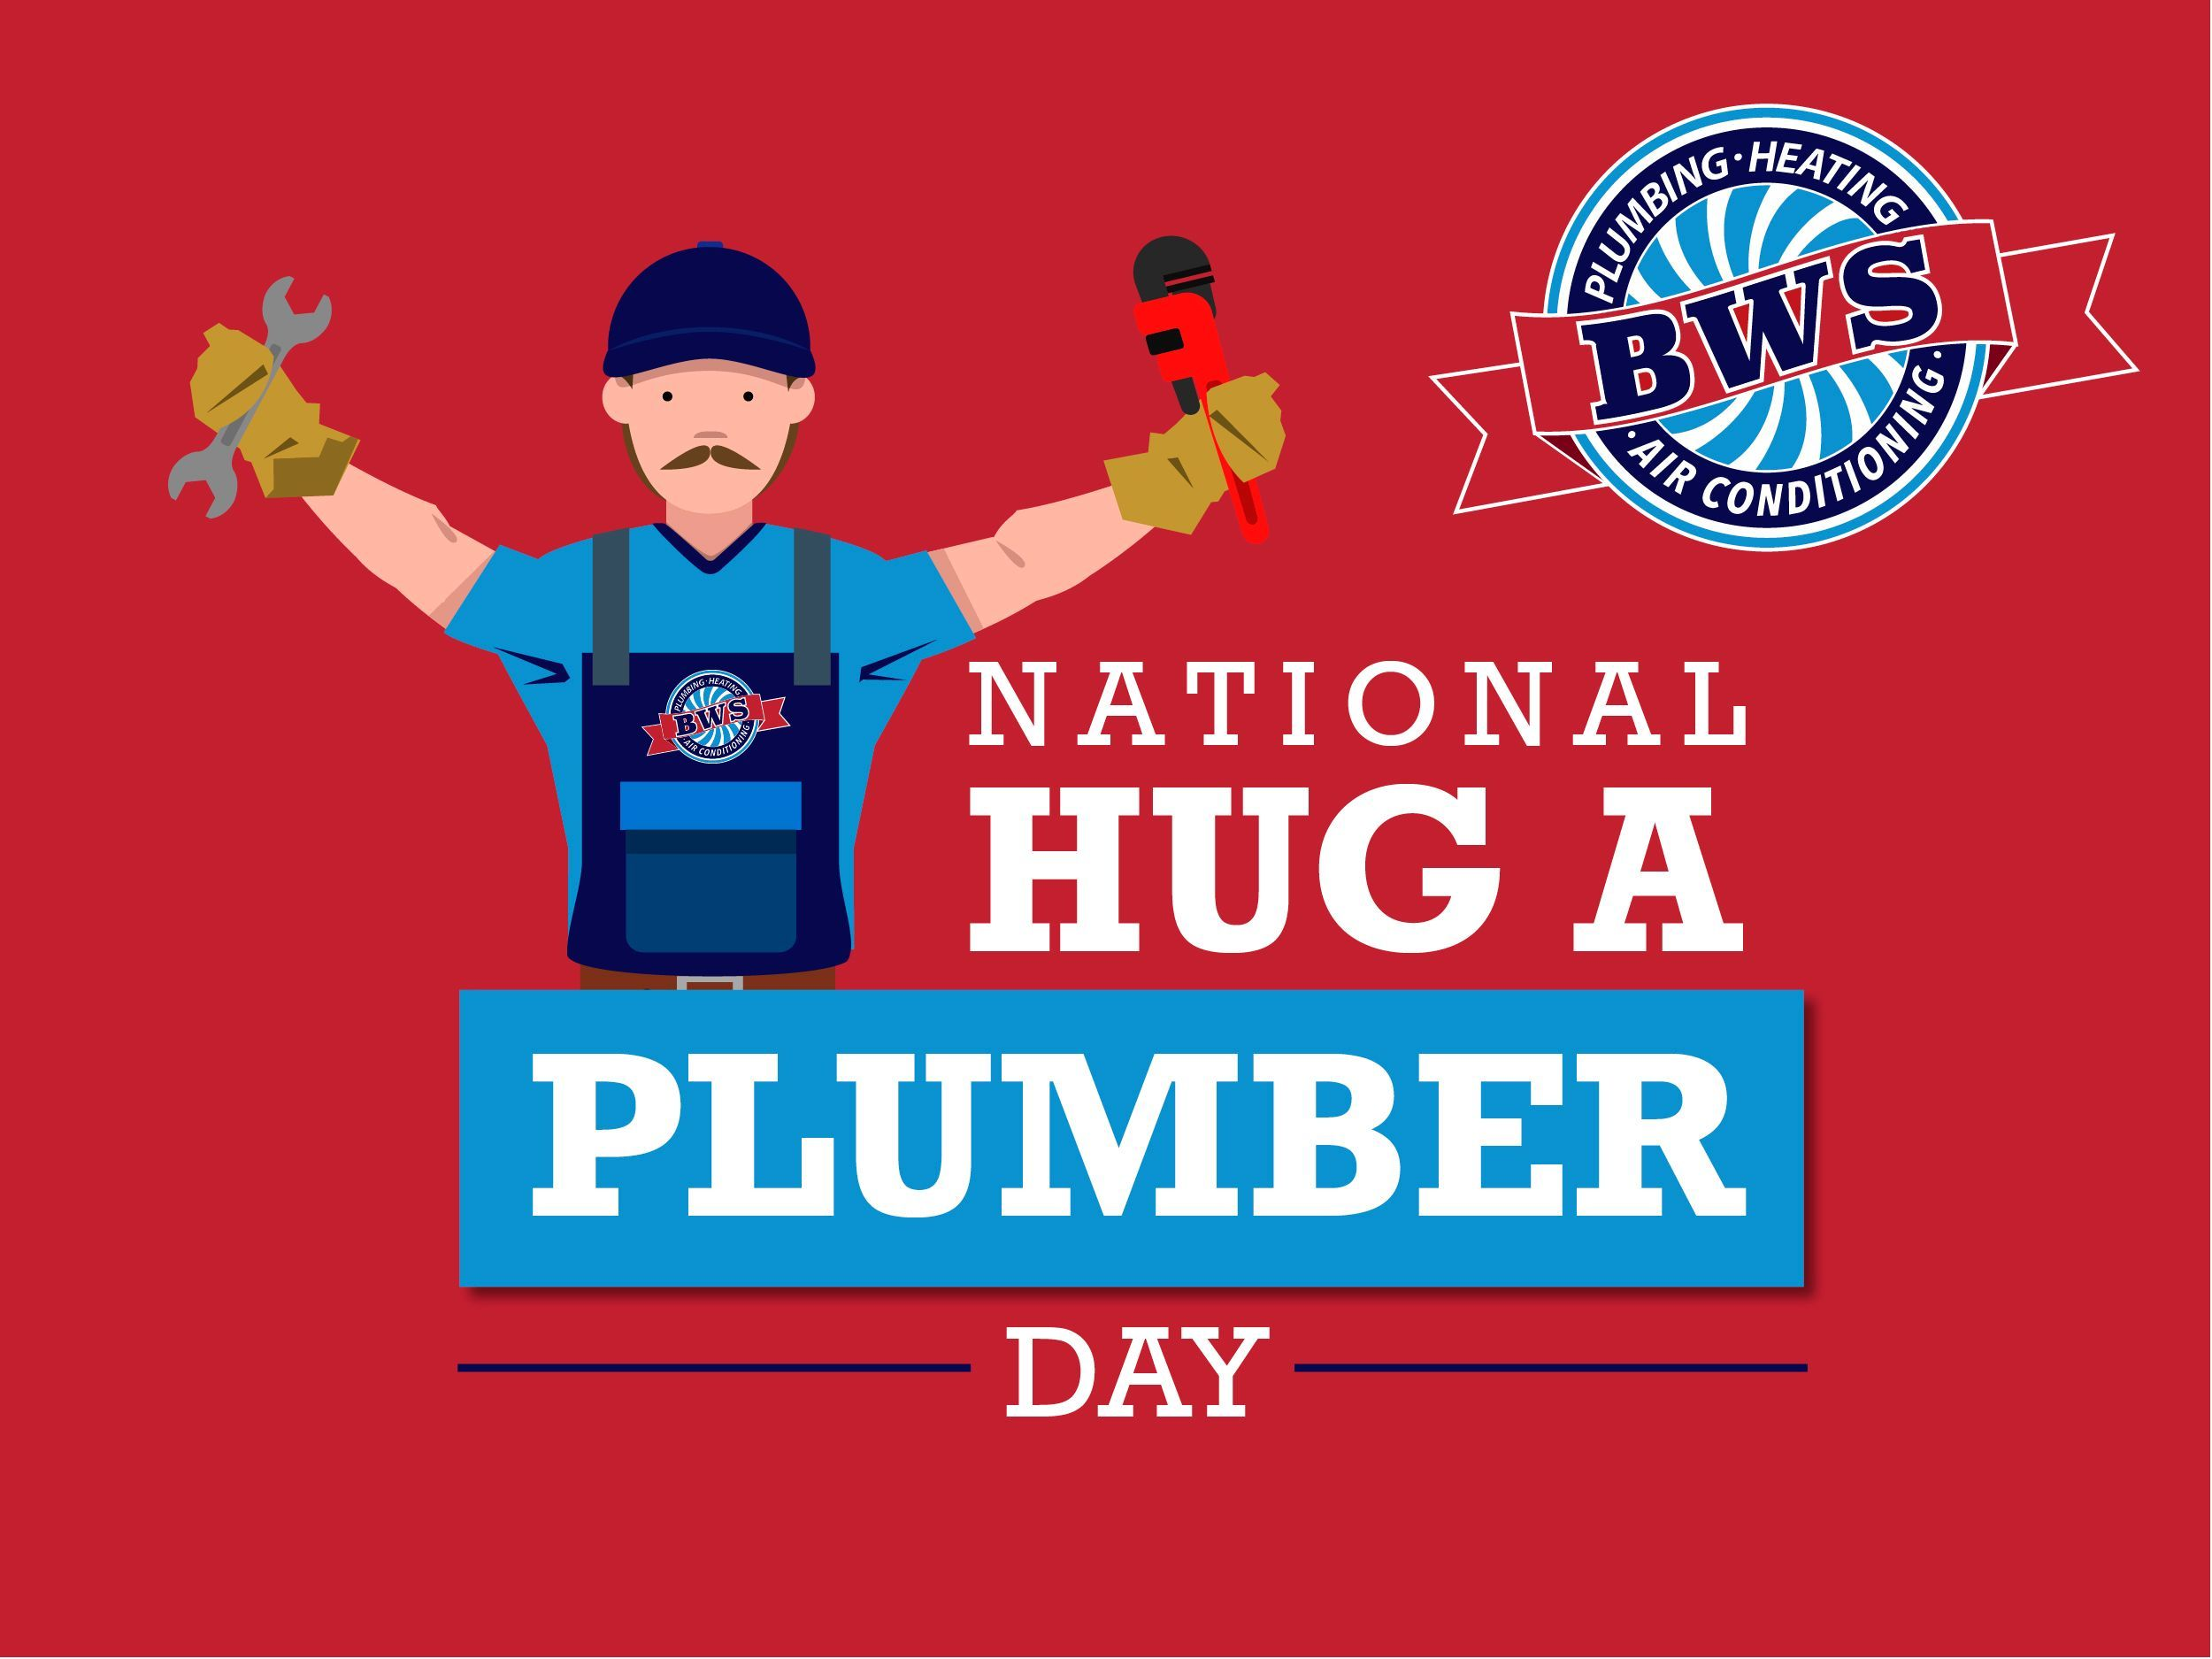 It S National Hug A Plumber Day Whether You Send A Virtual Hug Or An Emoji To Your Favorite Plumber Mak In 2020 Virtual Hug Plumber Heating And Air Conditioning